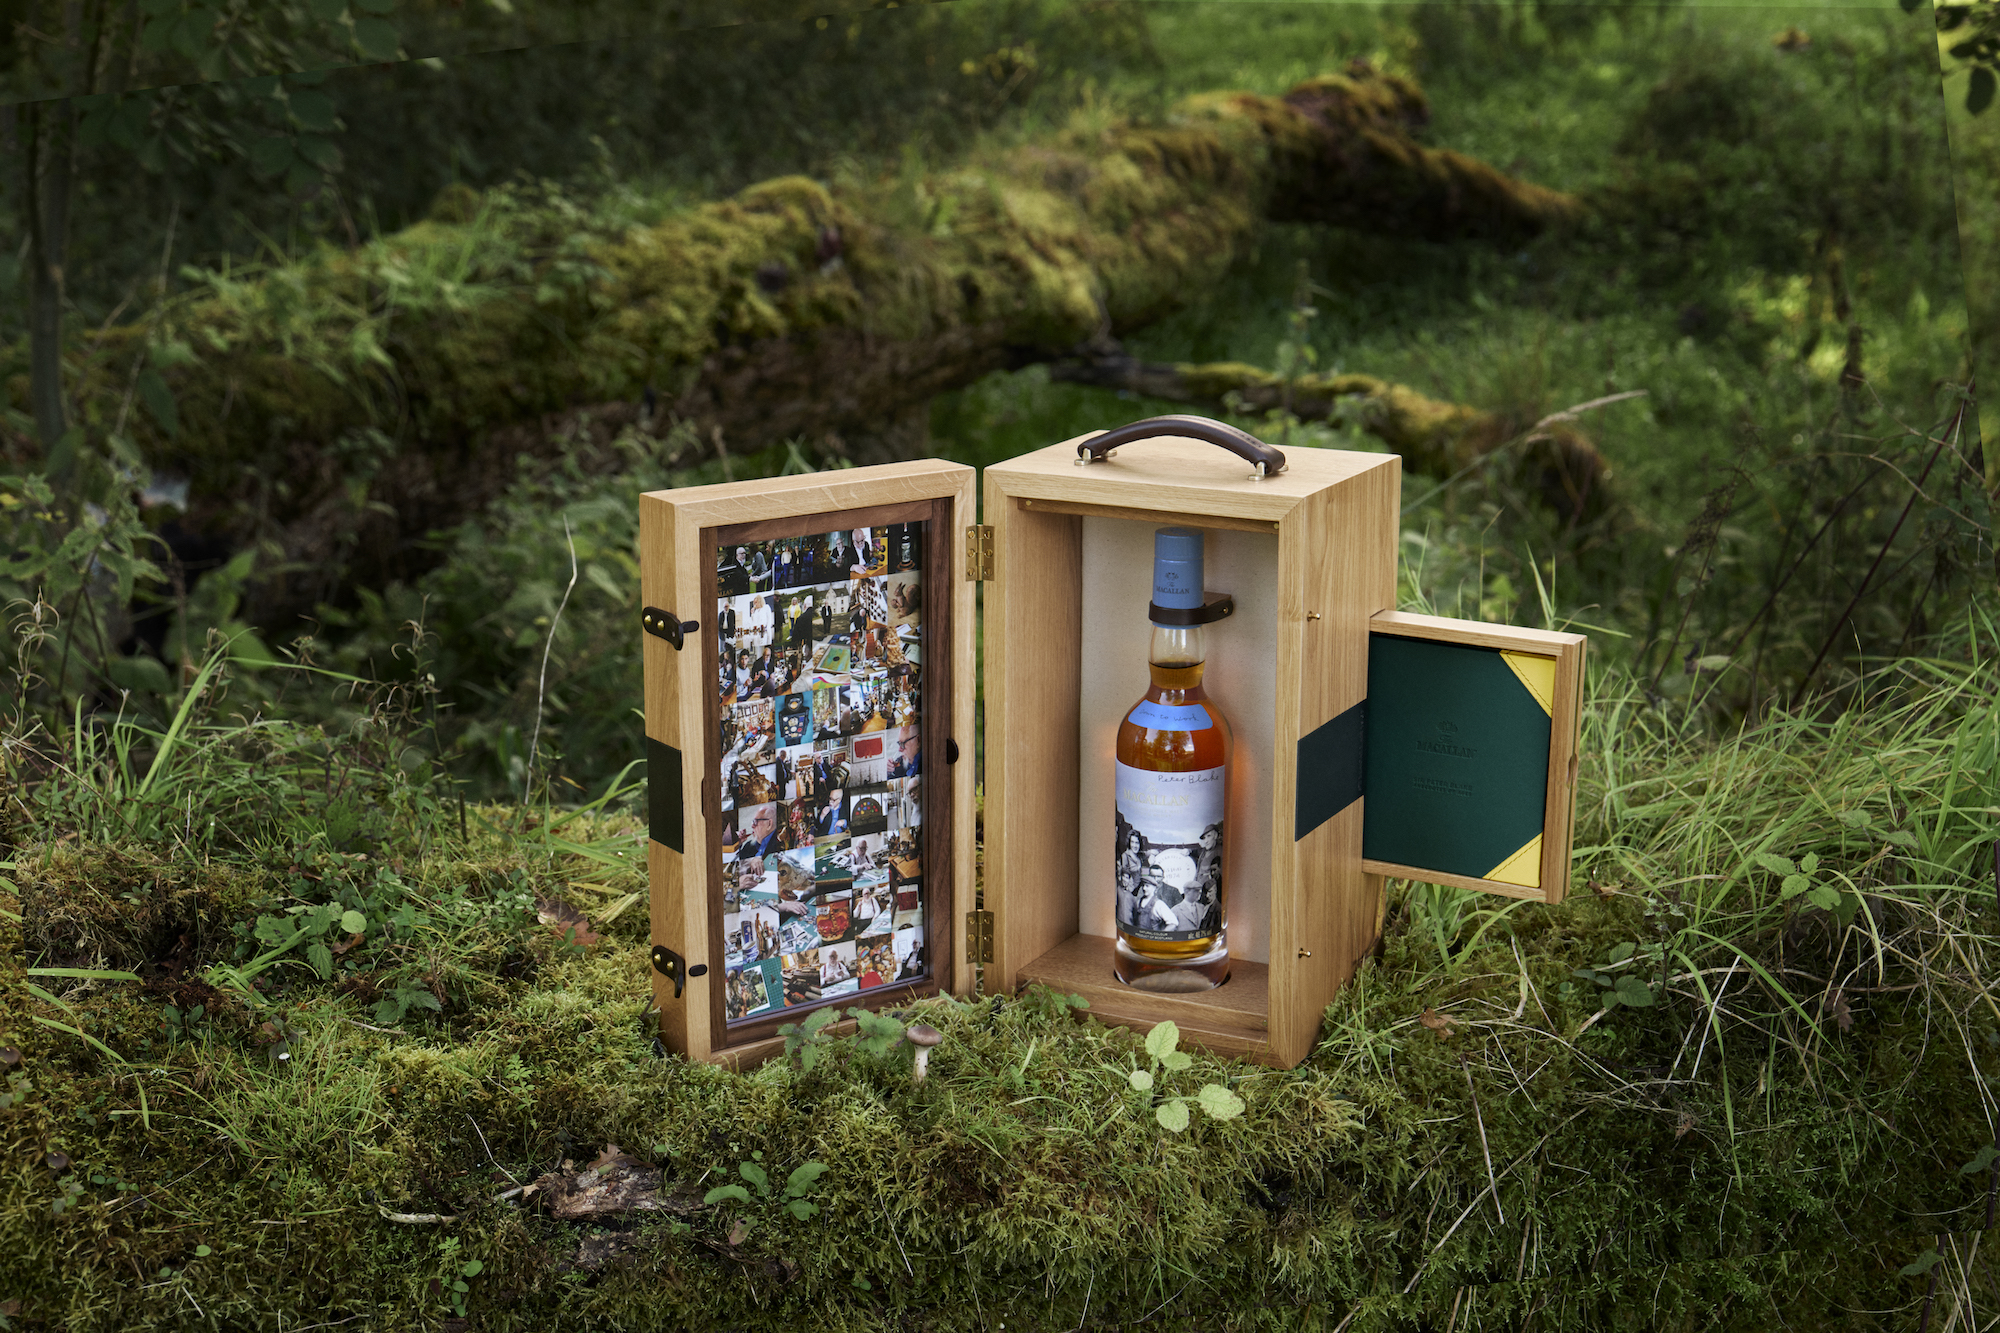 Down to Work whisky, a collaboration between Sir Peter Blake and The Macallan.